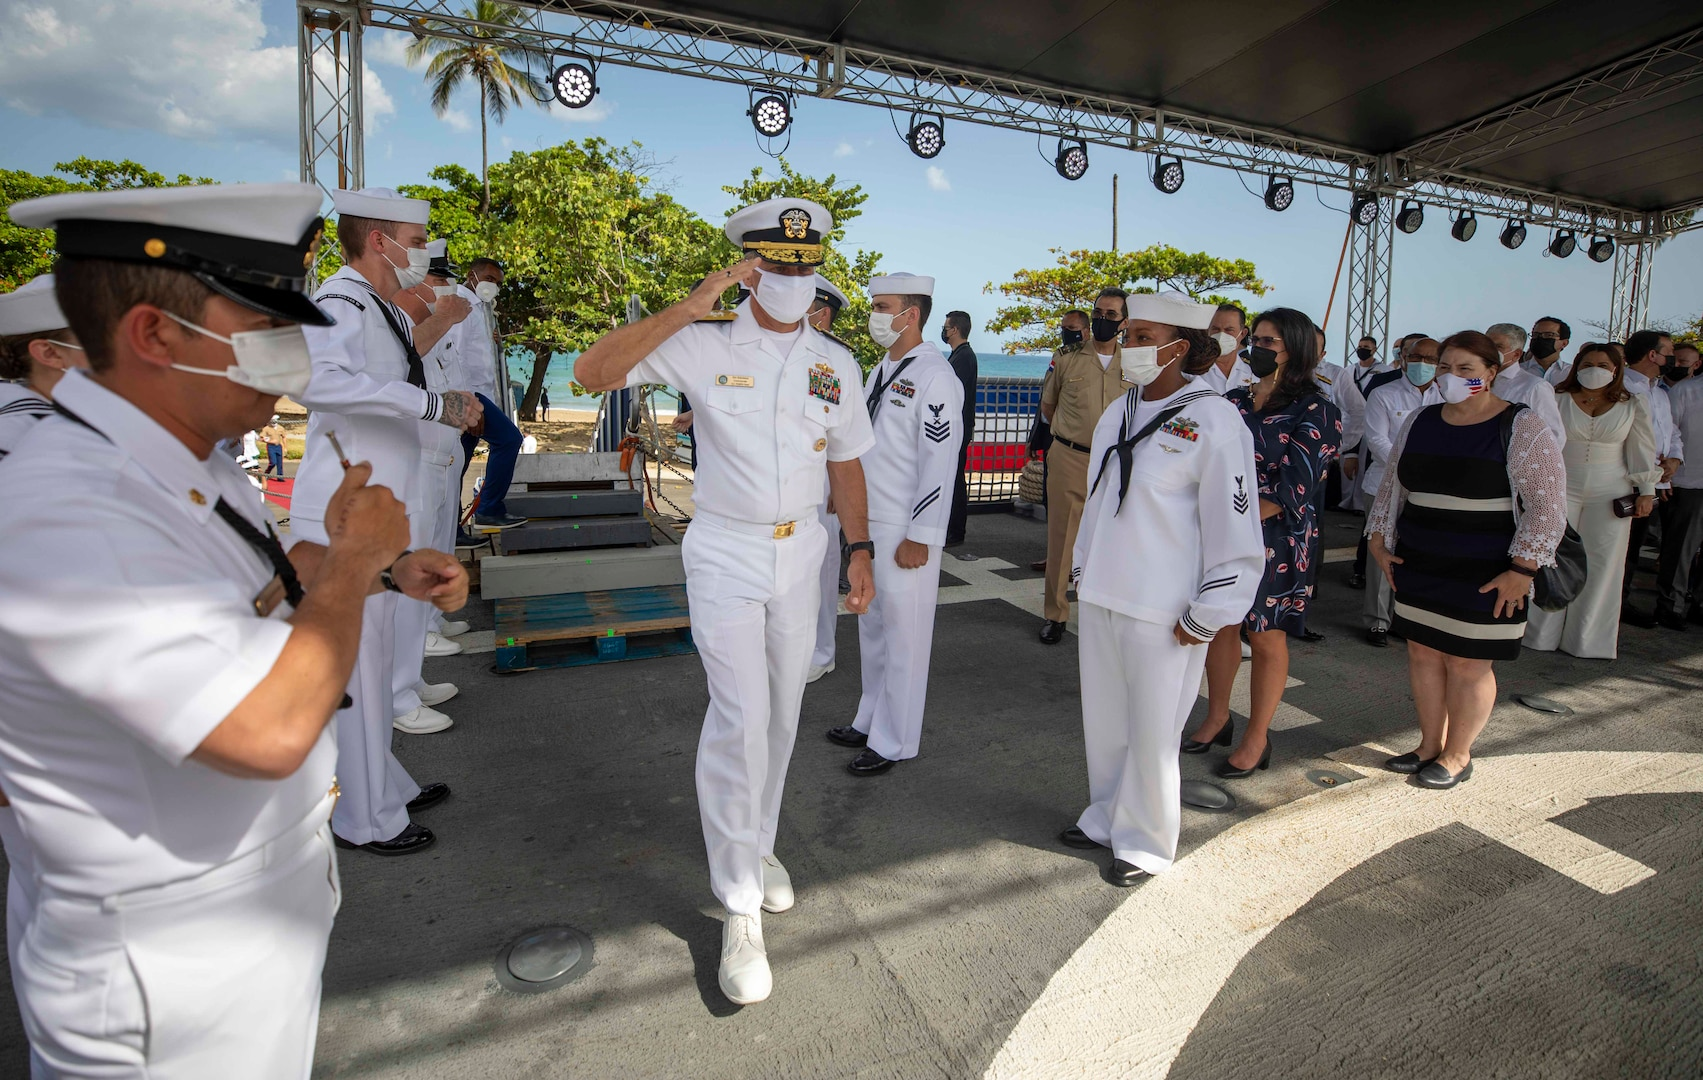 Rear Adm. Don Gabrielson, commander of U.S. Naval Forces Southern Command/U.S. 4th Fleet, boards the Freedom-variant littoral combat ship USS Billings (LCS 15), July 9, 2021.